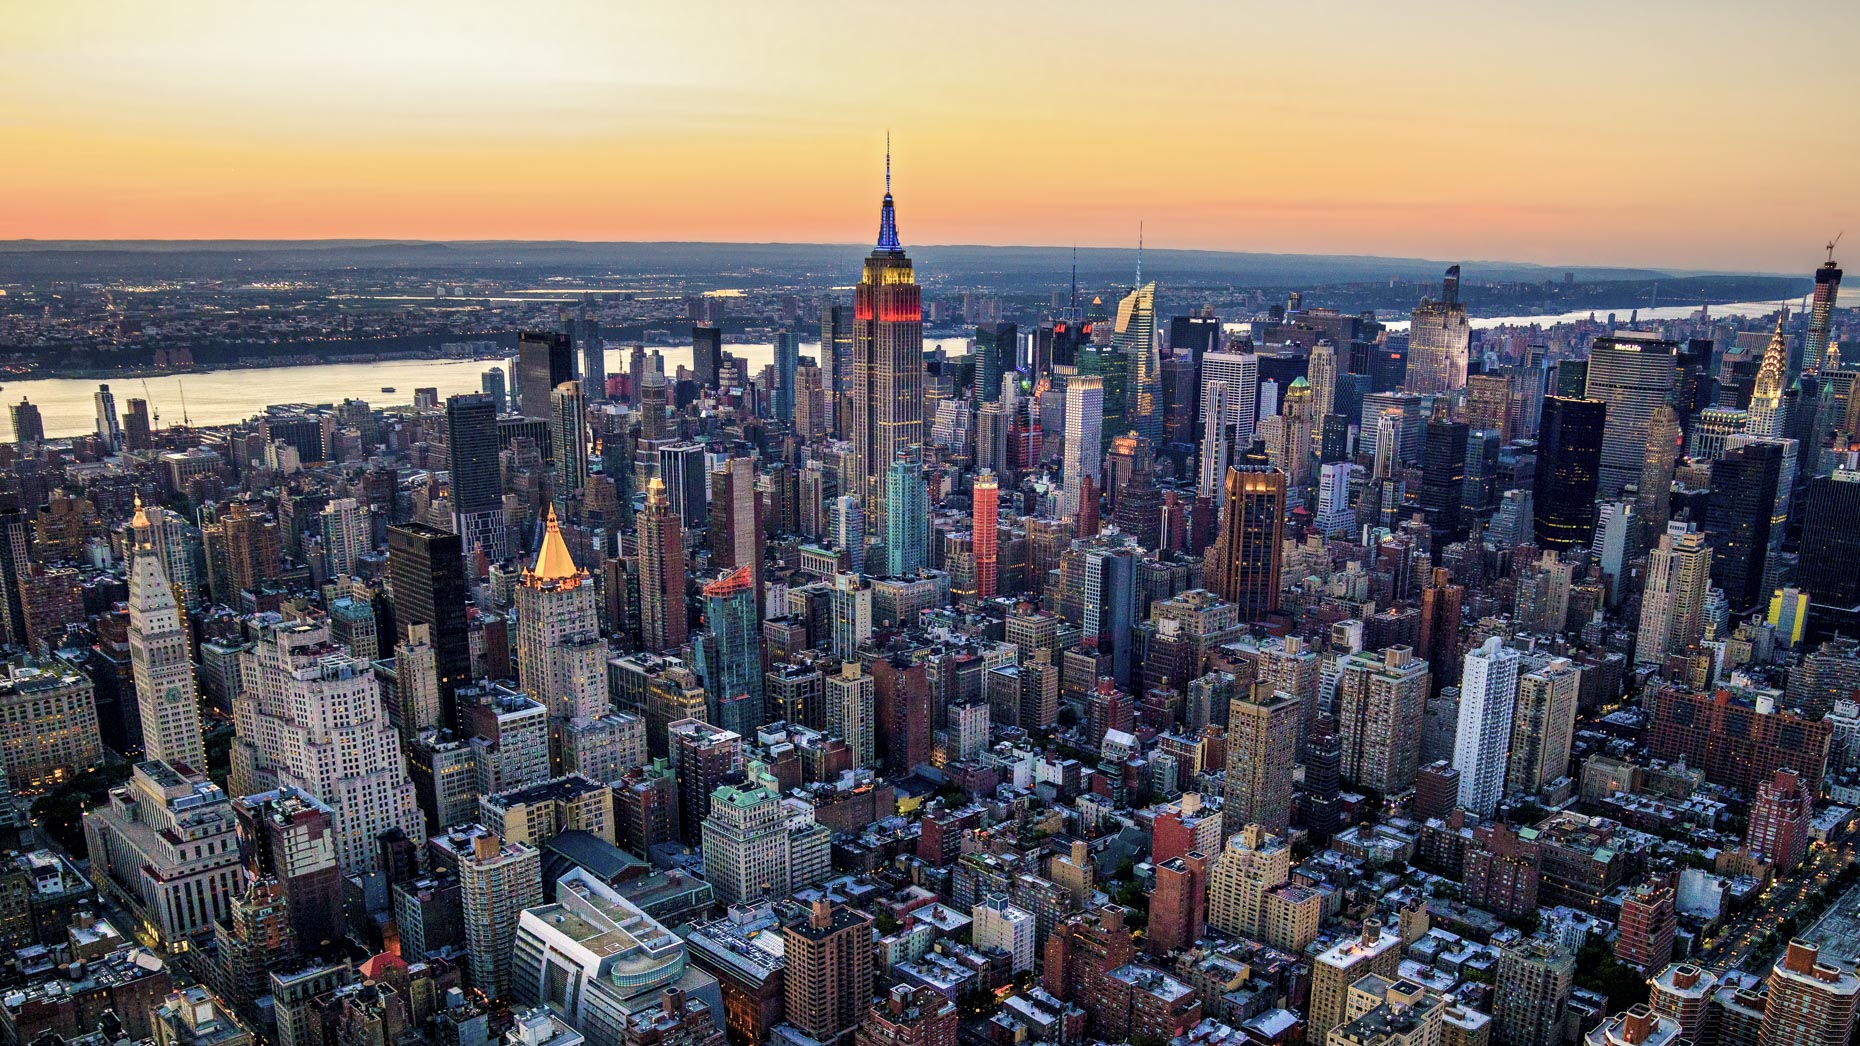 New York City aerial photography by Stefen Turner | The Big Apple on the 4th of July